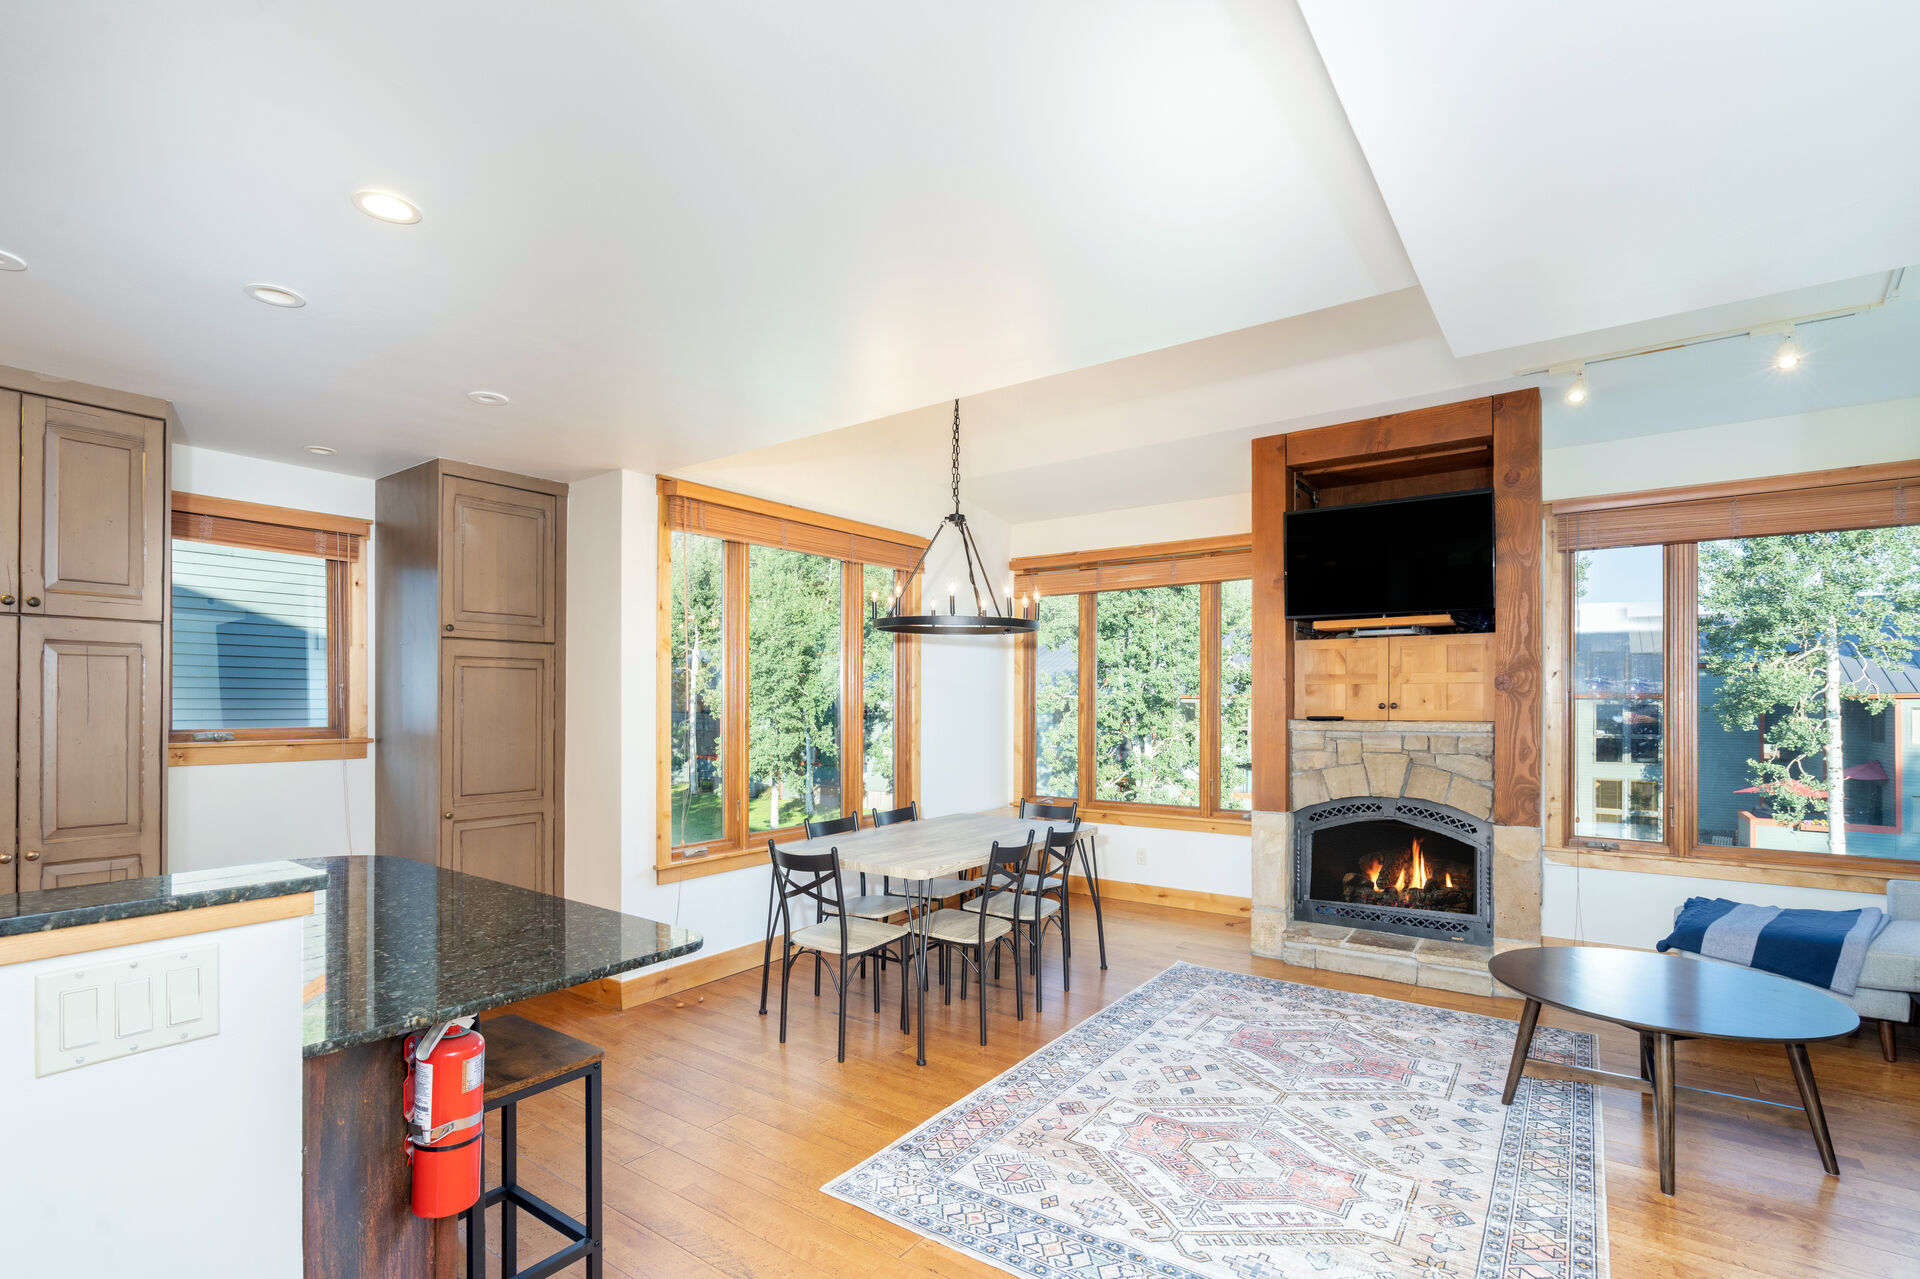 Open floor plan dining and living room with wood floors